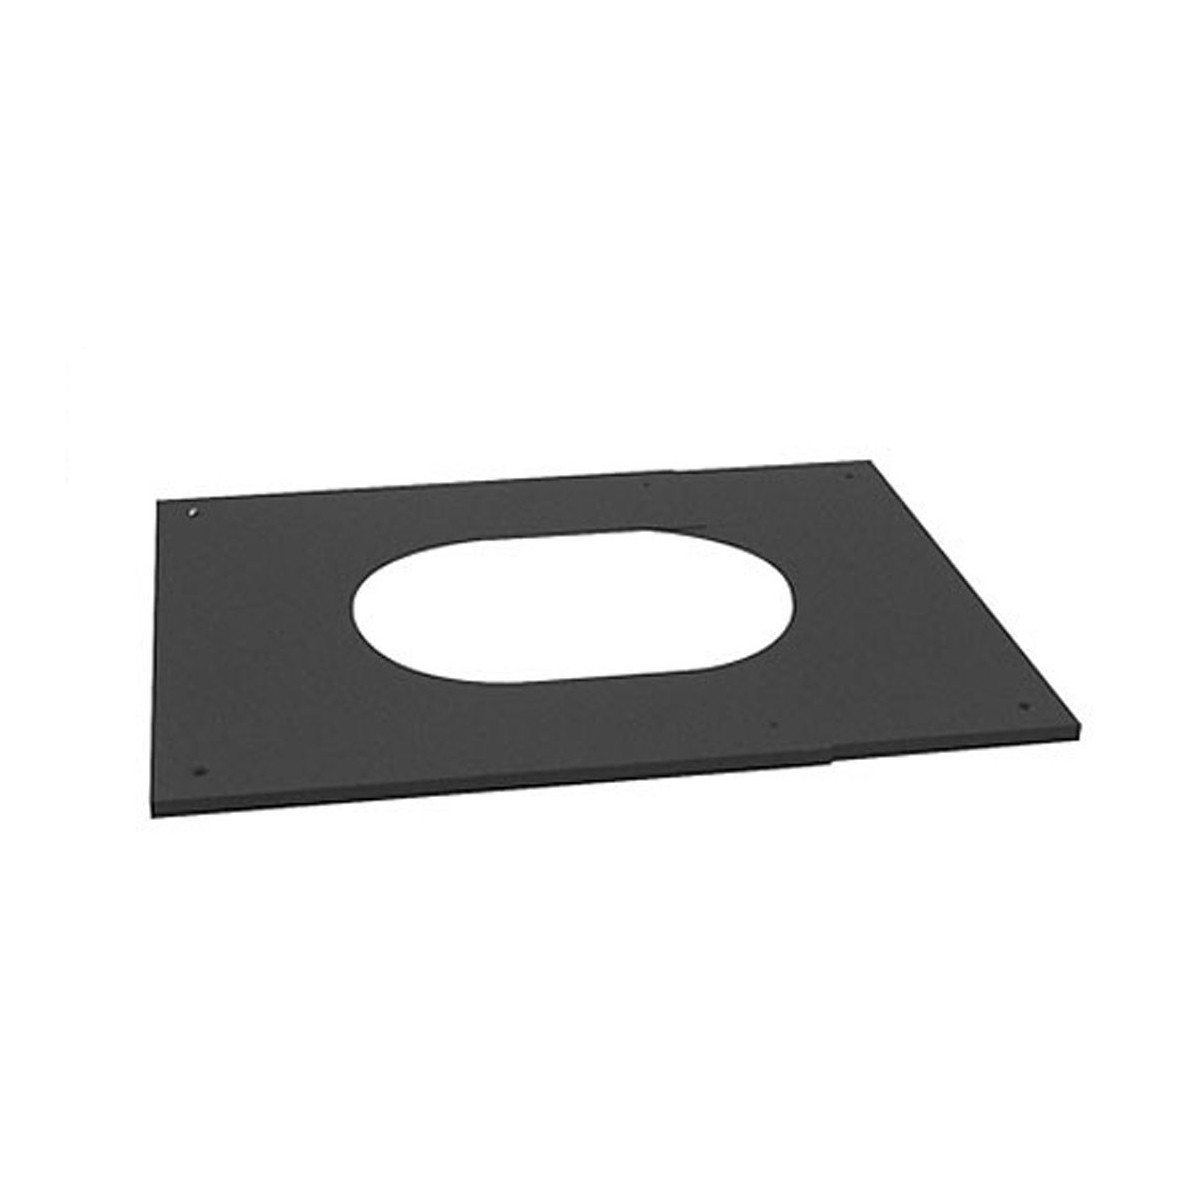 "MB 6"" Pitched Ceiling Plate (6/12-12/12)"